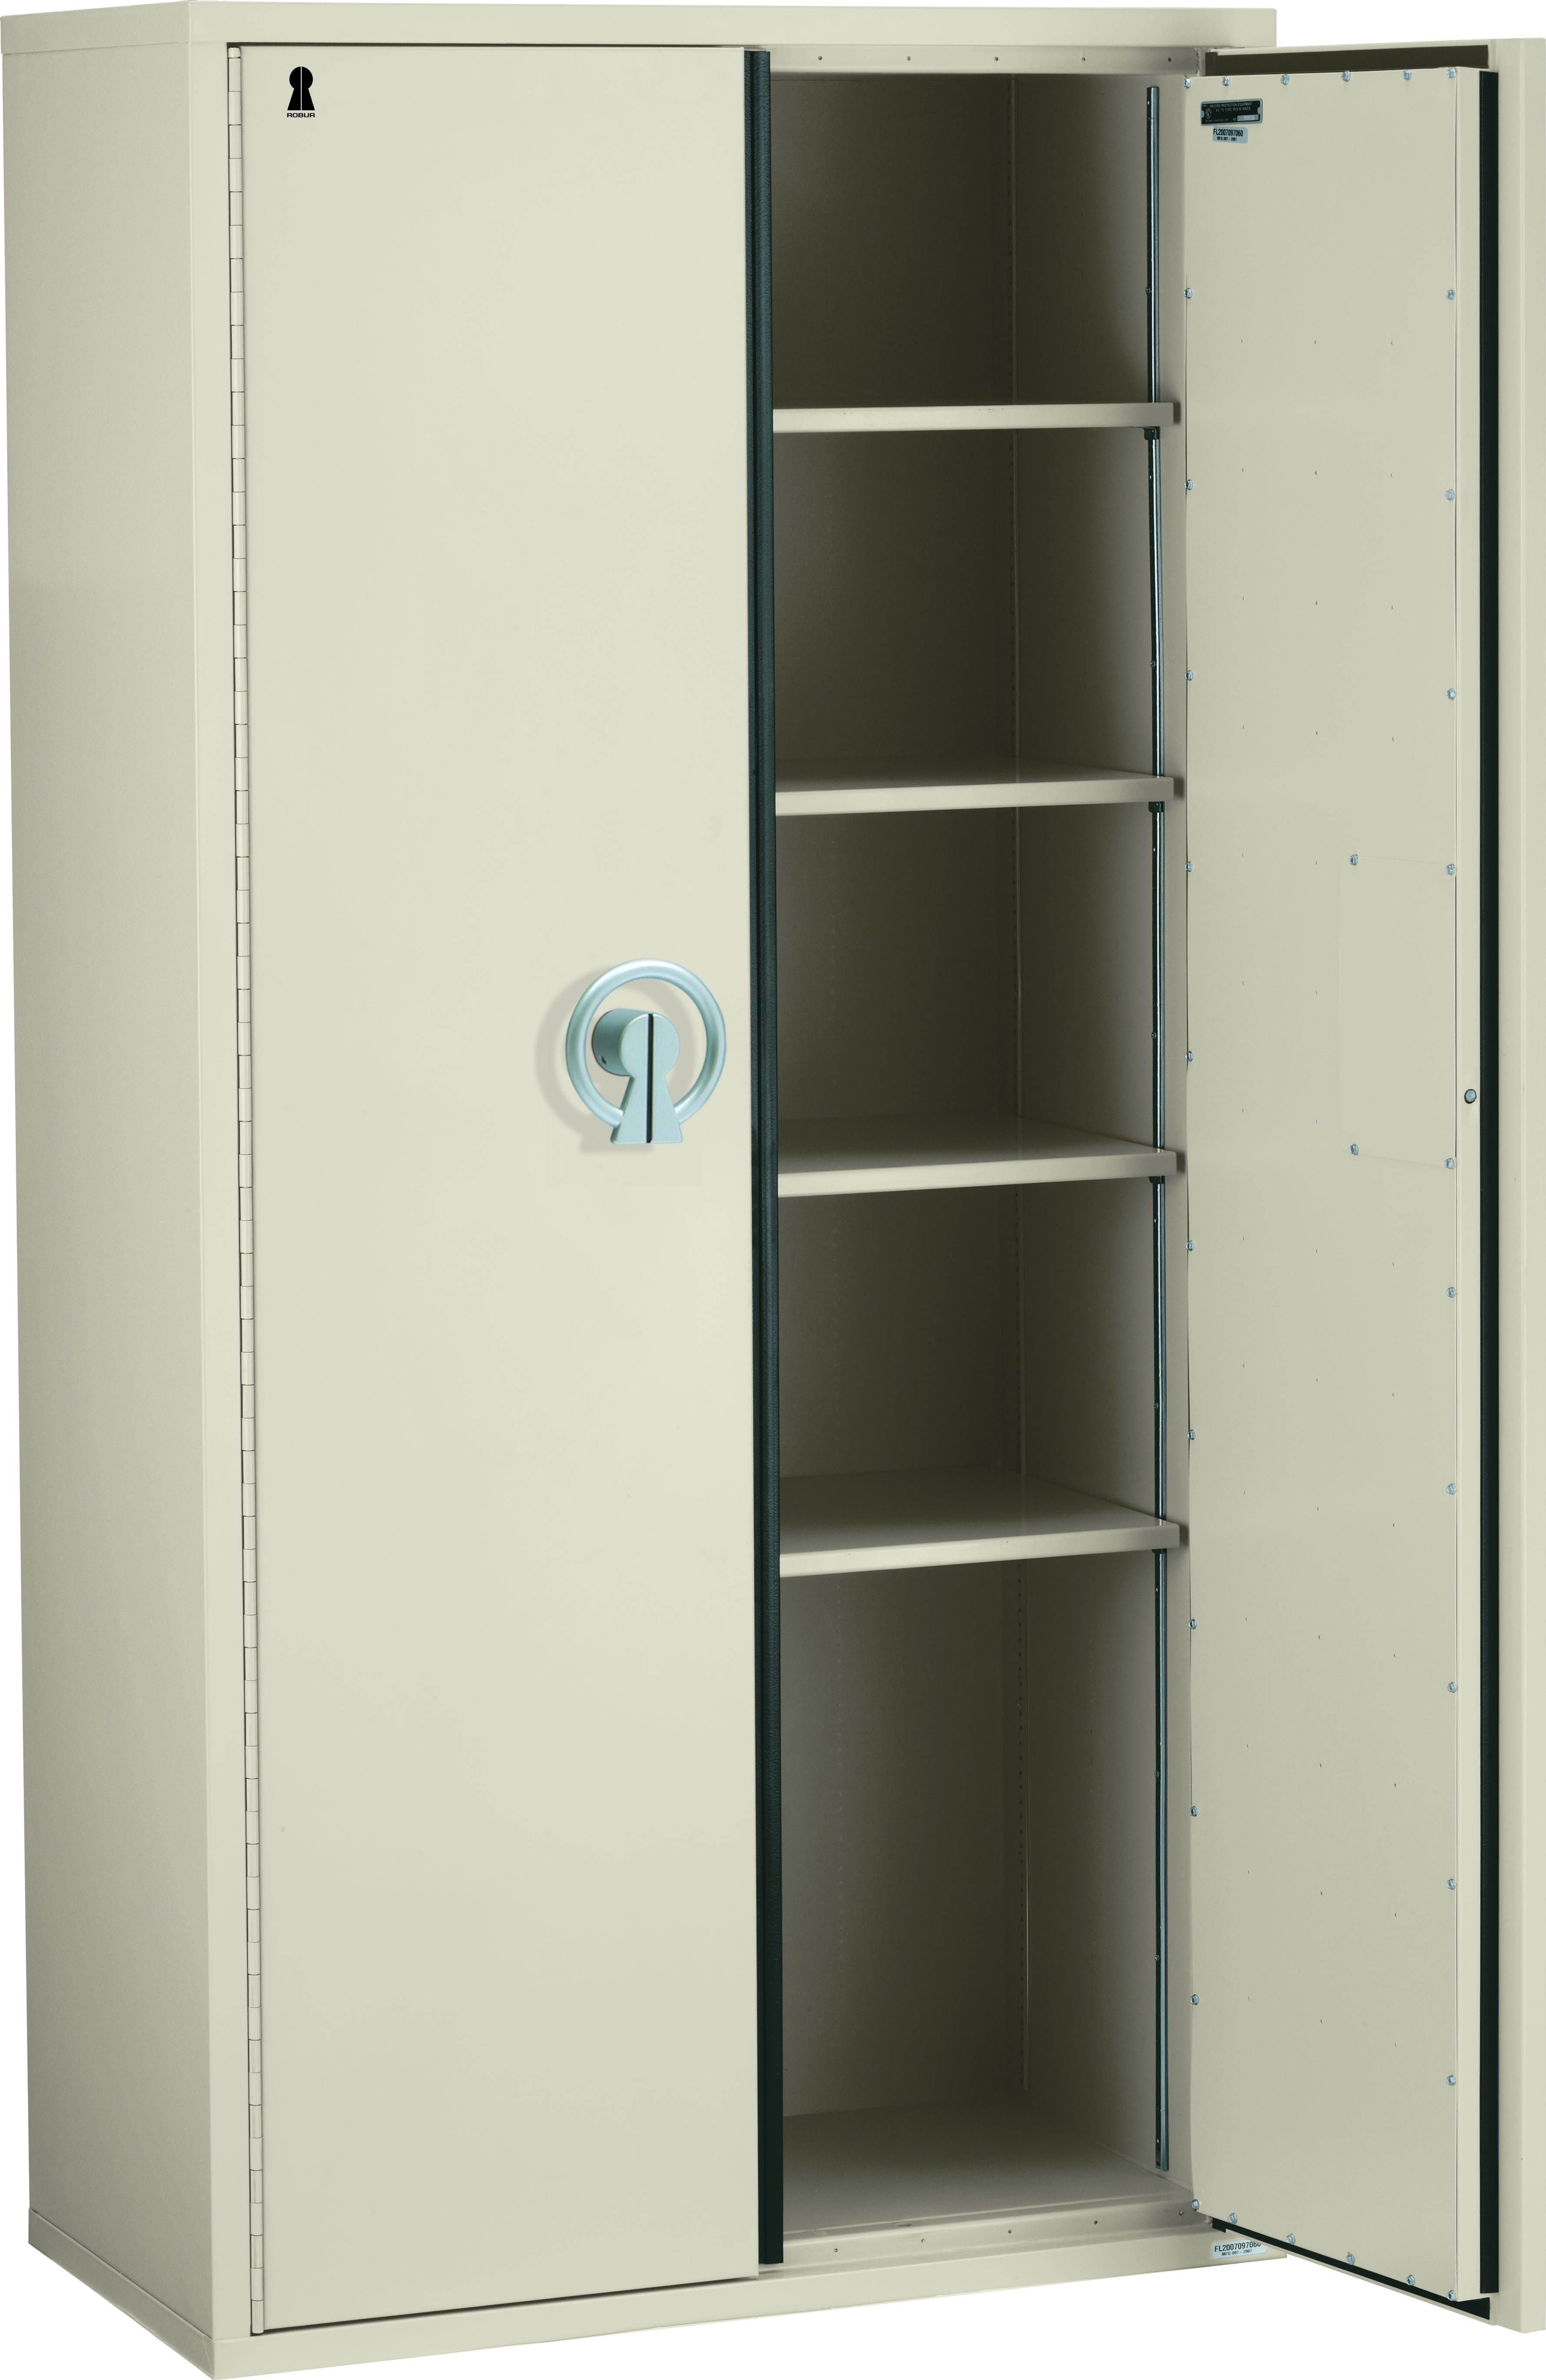 Fireproof Document Storage Cabinets3559 X 5478